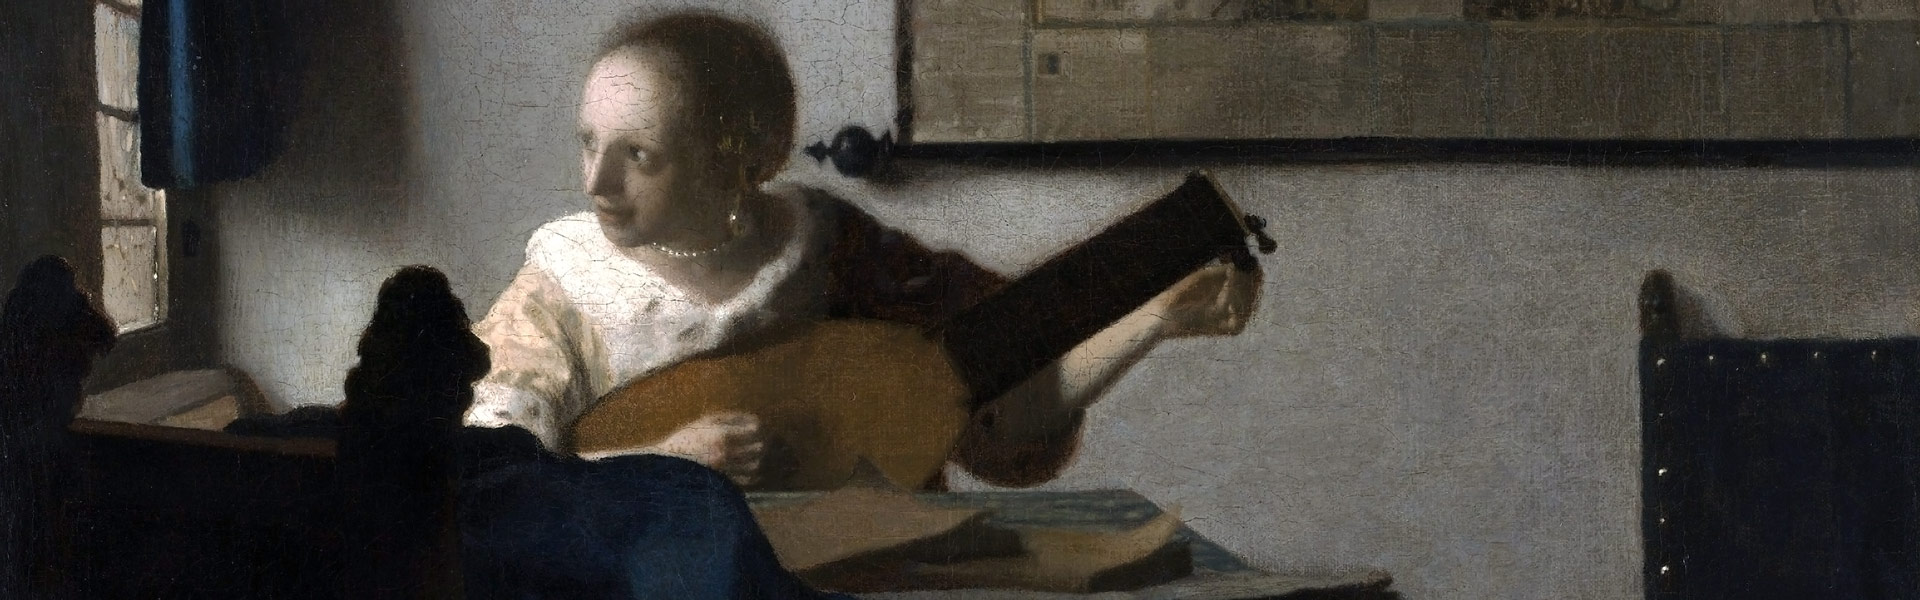 Vermeer_-_Woman_with_a_Lute_near_a_window